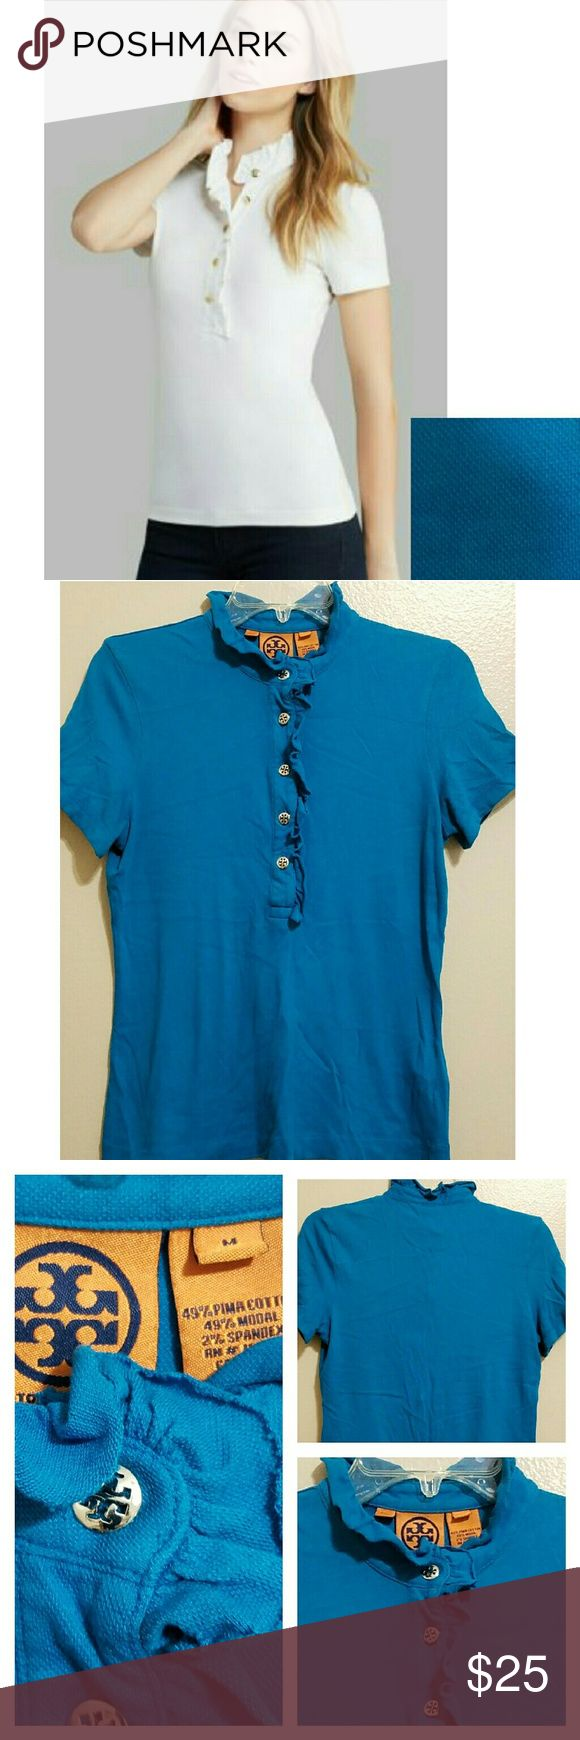 JUST IN!▪Tory Burch Lidia Polo Gorgeous bright blue polo! Stand up ruffle collar. Ruffle collar designed with raw edge. Signature Tory Burch buttons (silver tone). Great condition! The sizing on this runs slightly smaller than most tops, in my opinion. Please note measurements in Pic 3. No holes, rips, or stains. Tory Burch Tops